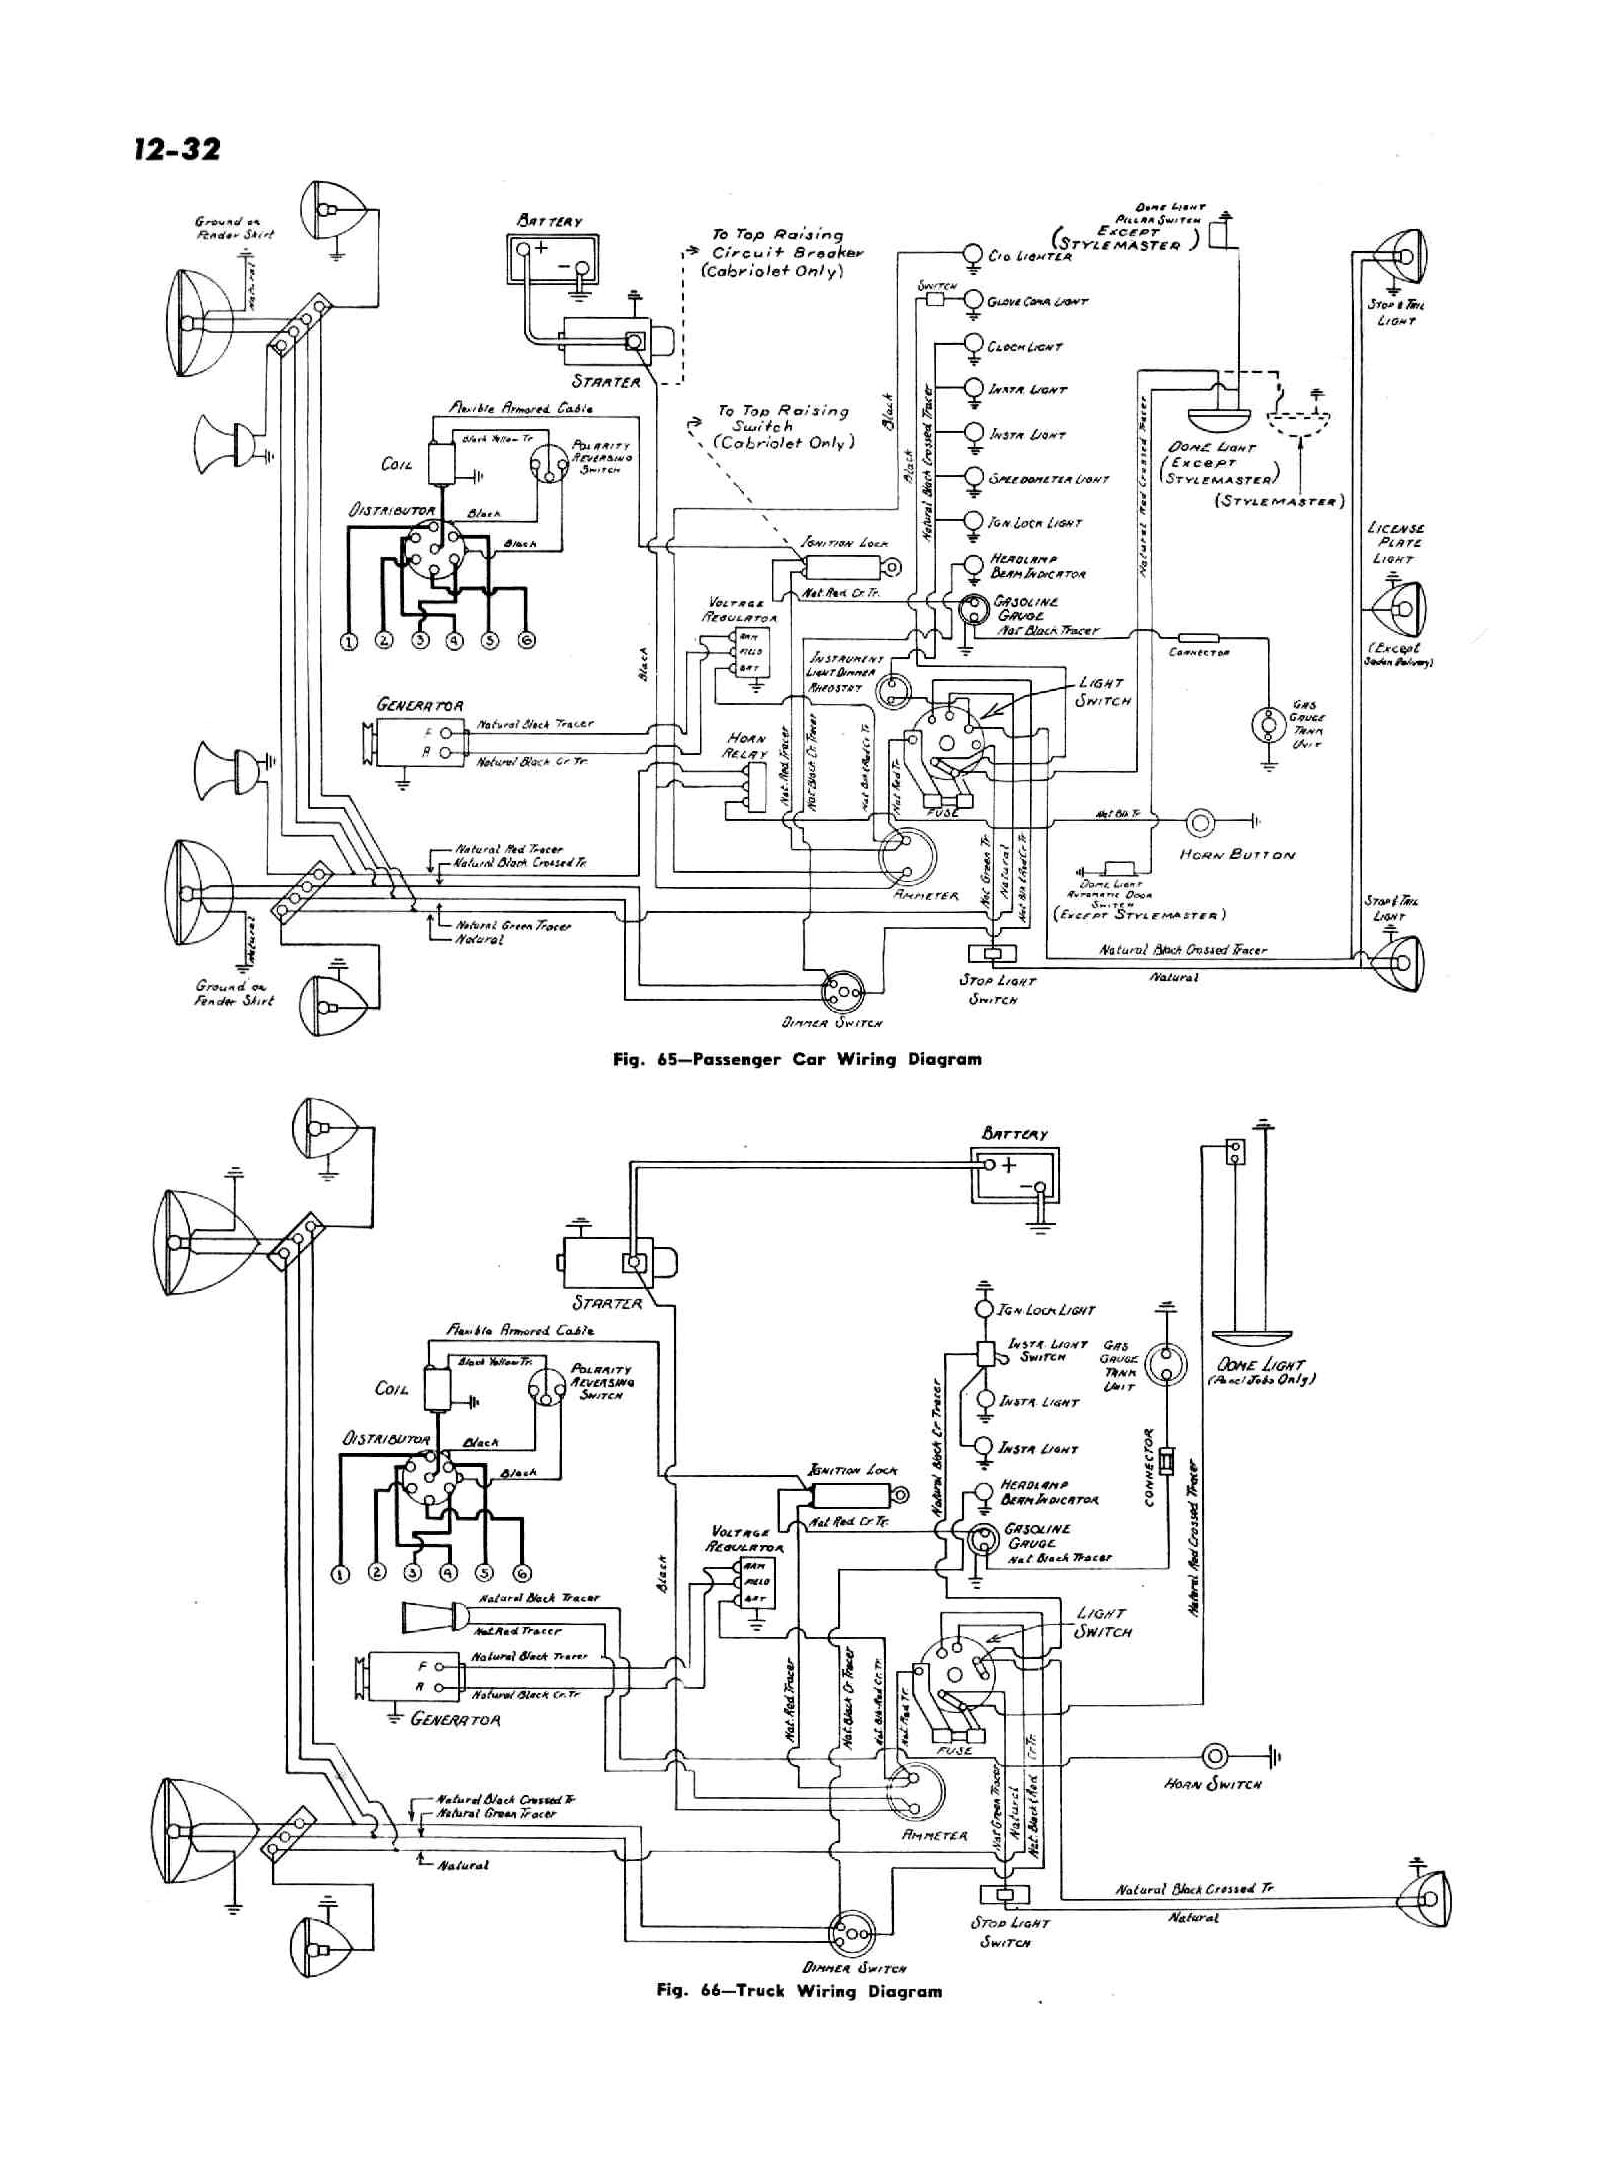 1958 gmc wiring diagram wiring diagram site chevy wiring diagrams chevy truck wiring diagram 1958 gmc wiring diagram